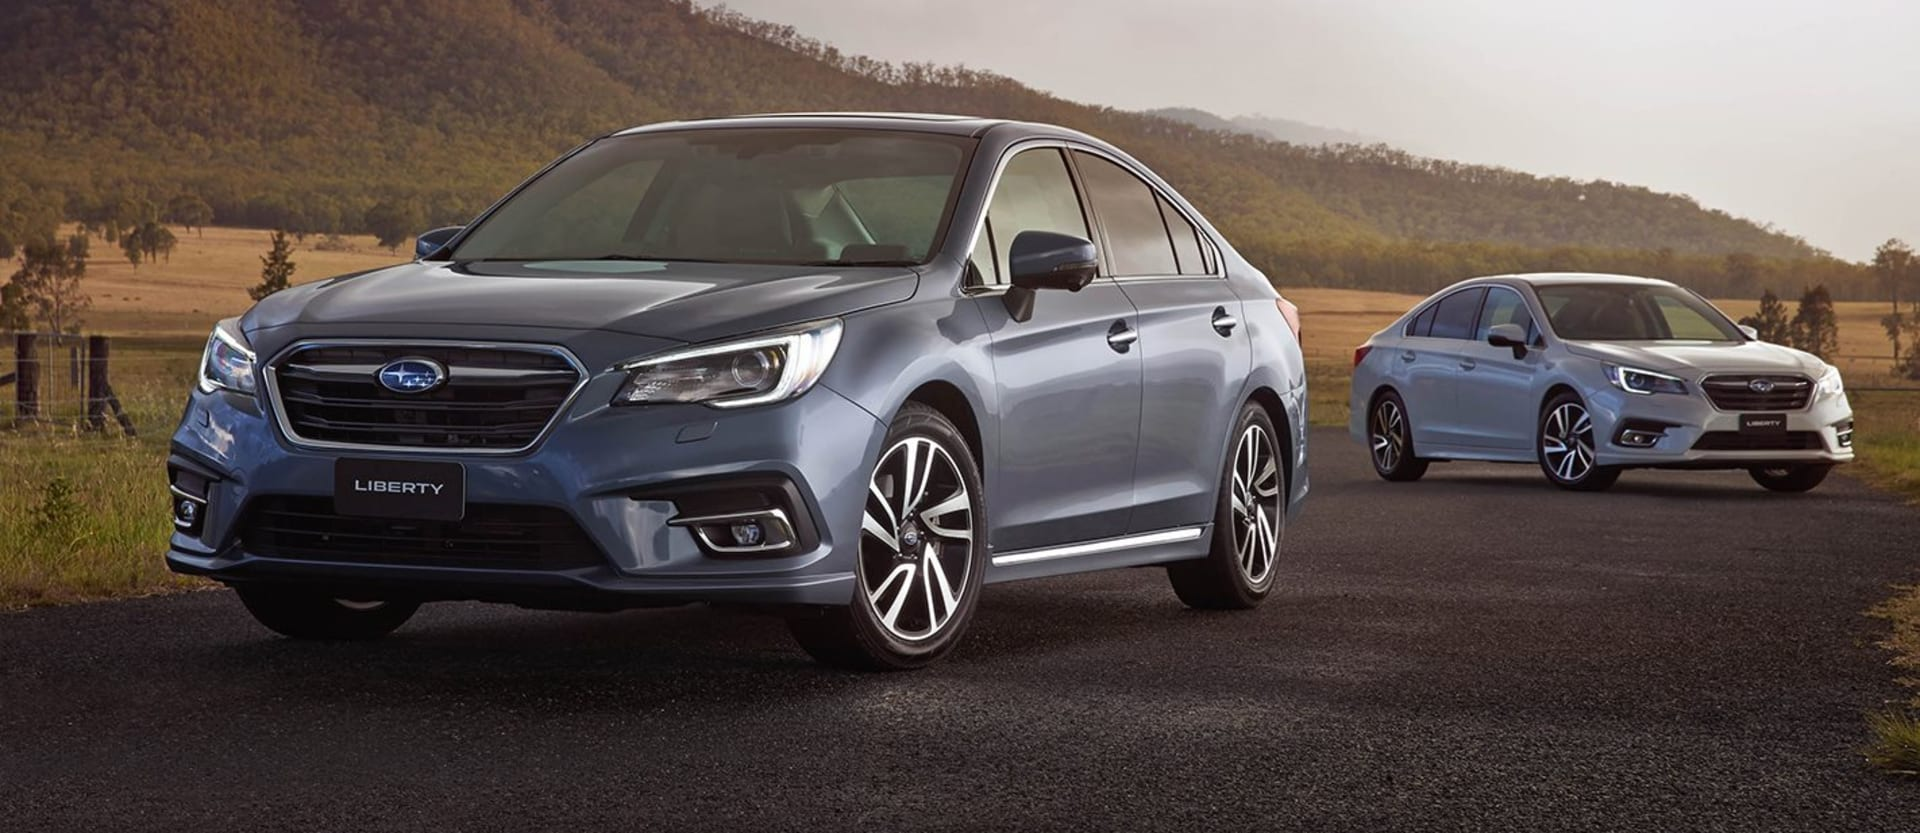 2018 Subaru Liberty pricing and features